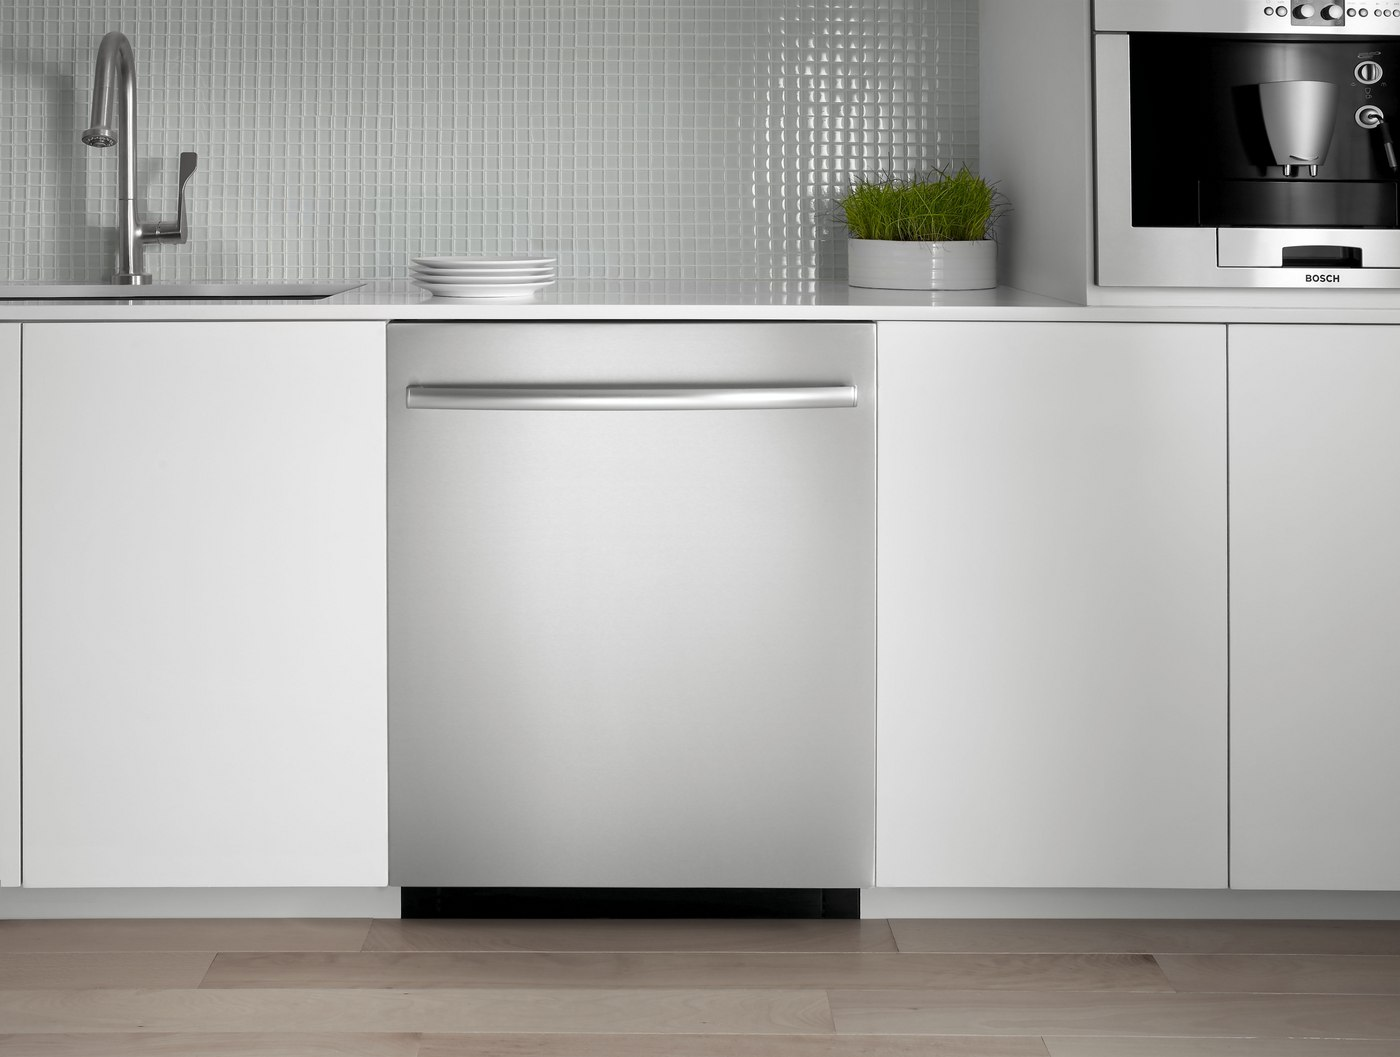 Miele Dishwasher Reviews >> American Style vs. European Style Dishwashers (Reviews ...